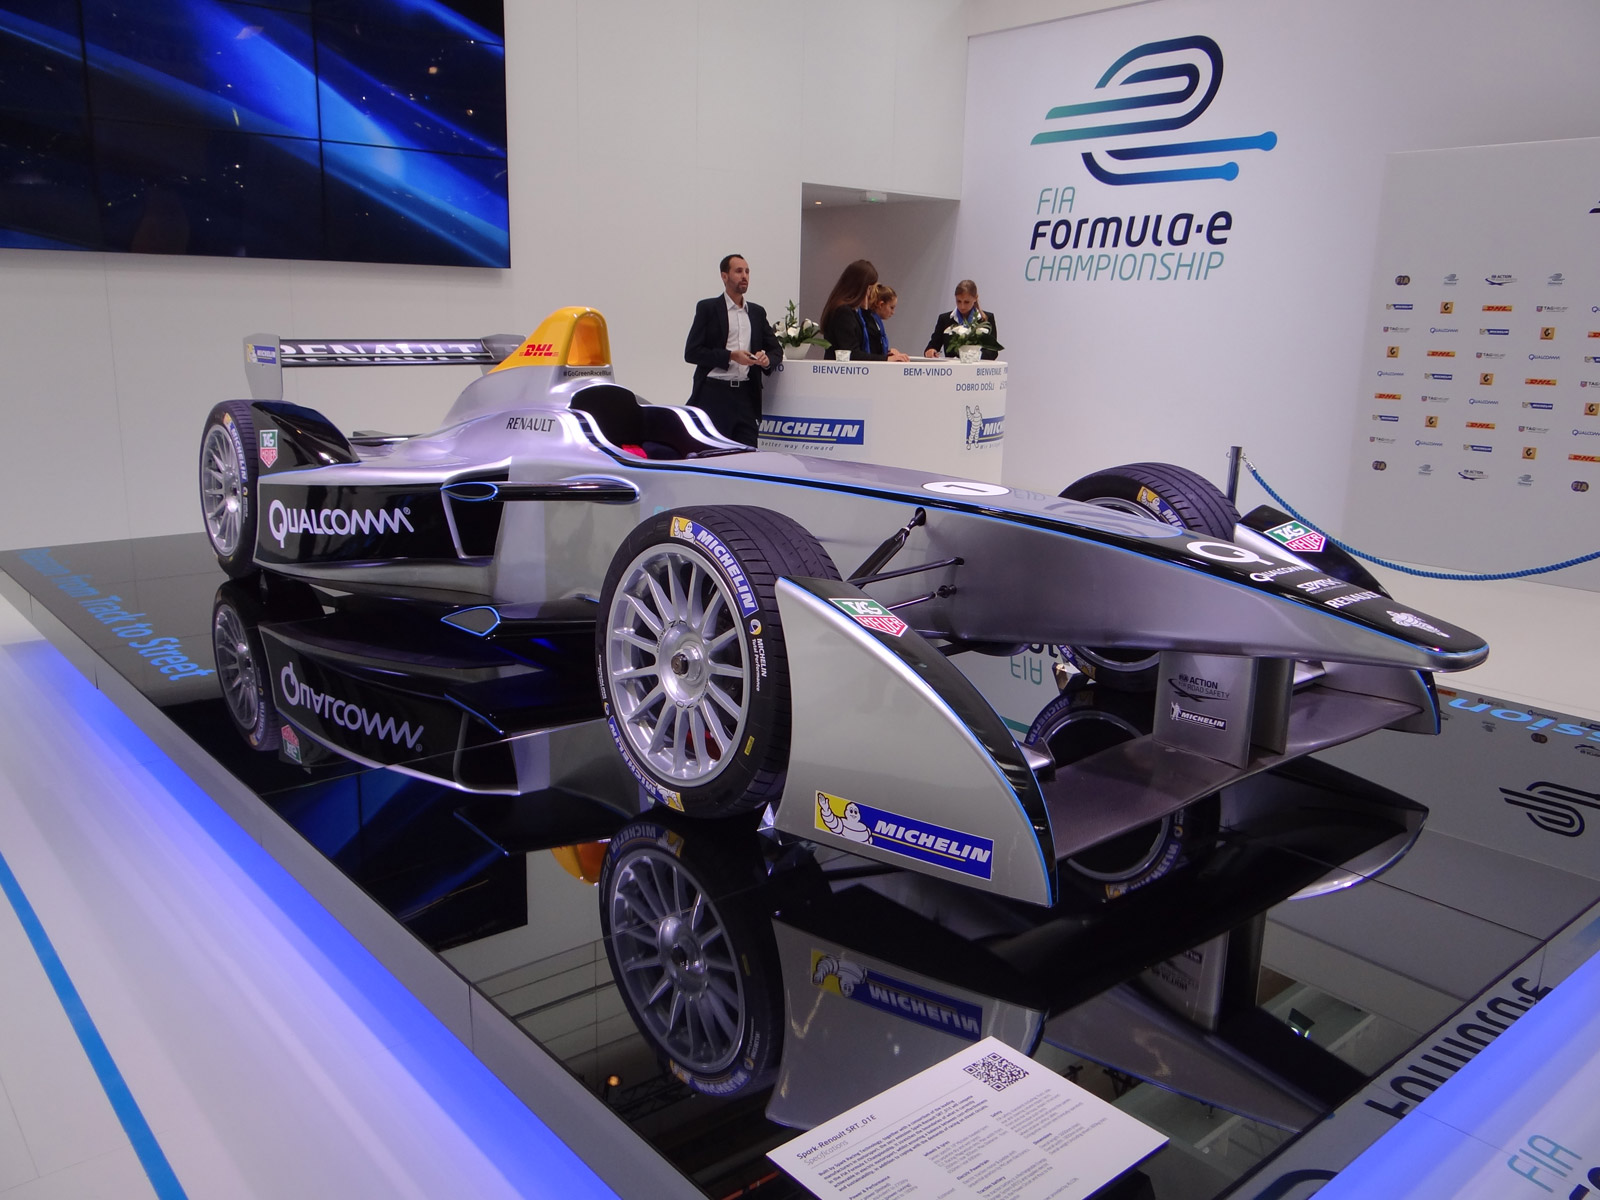 2014 spark renault srt 01e formula e electric racer at. Black Bedroom Furniture Sets. Home Design Ideas